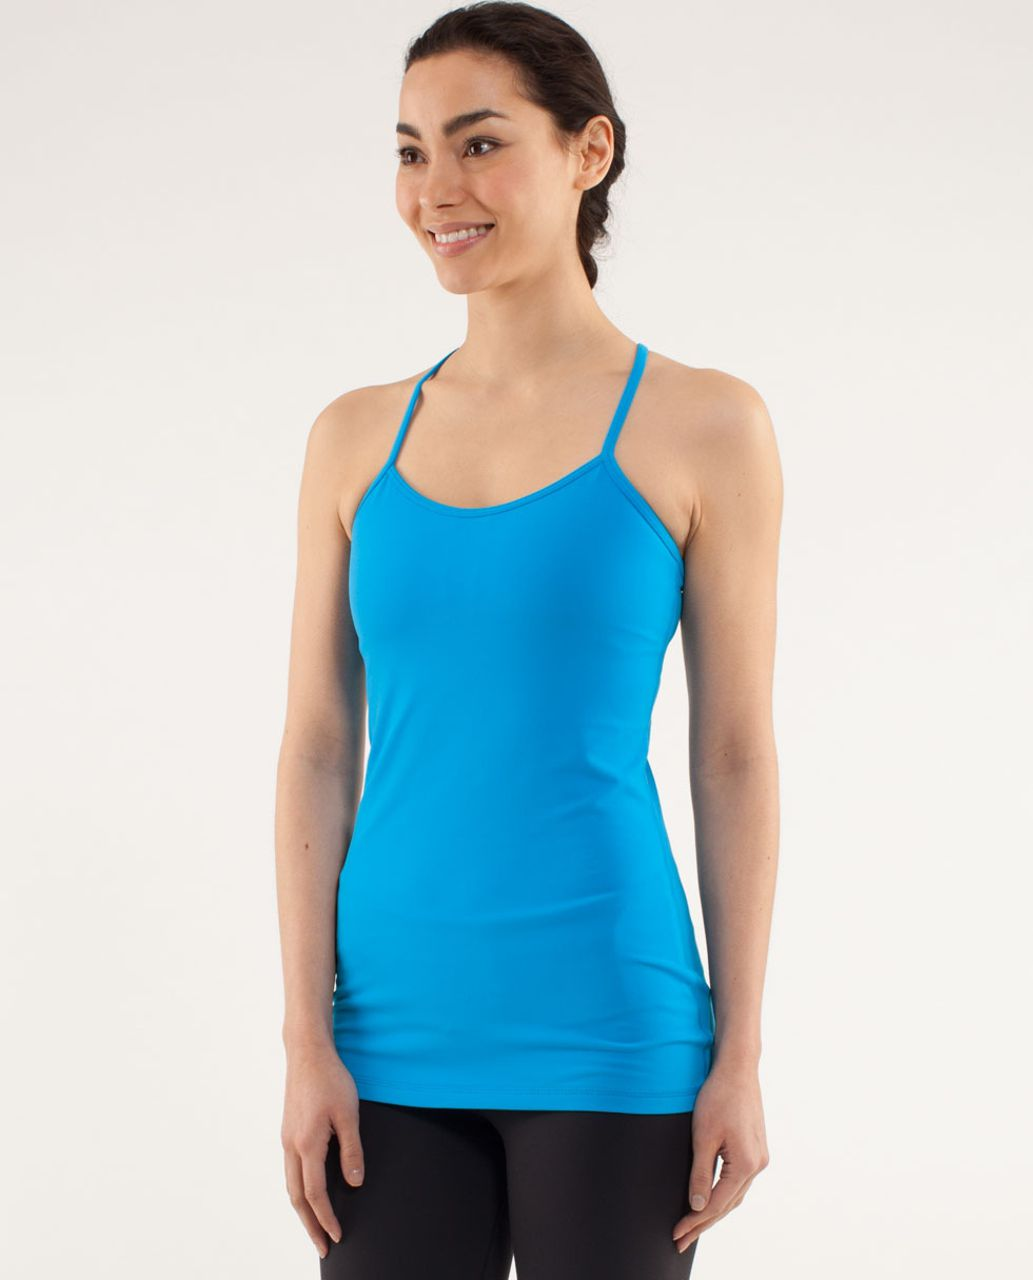 Lululemon Power Y Tank *Luon Light - Beach Blanket Blue